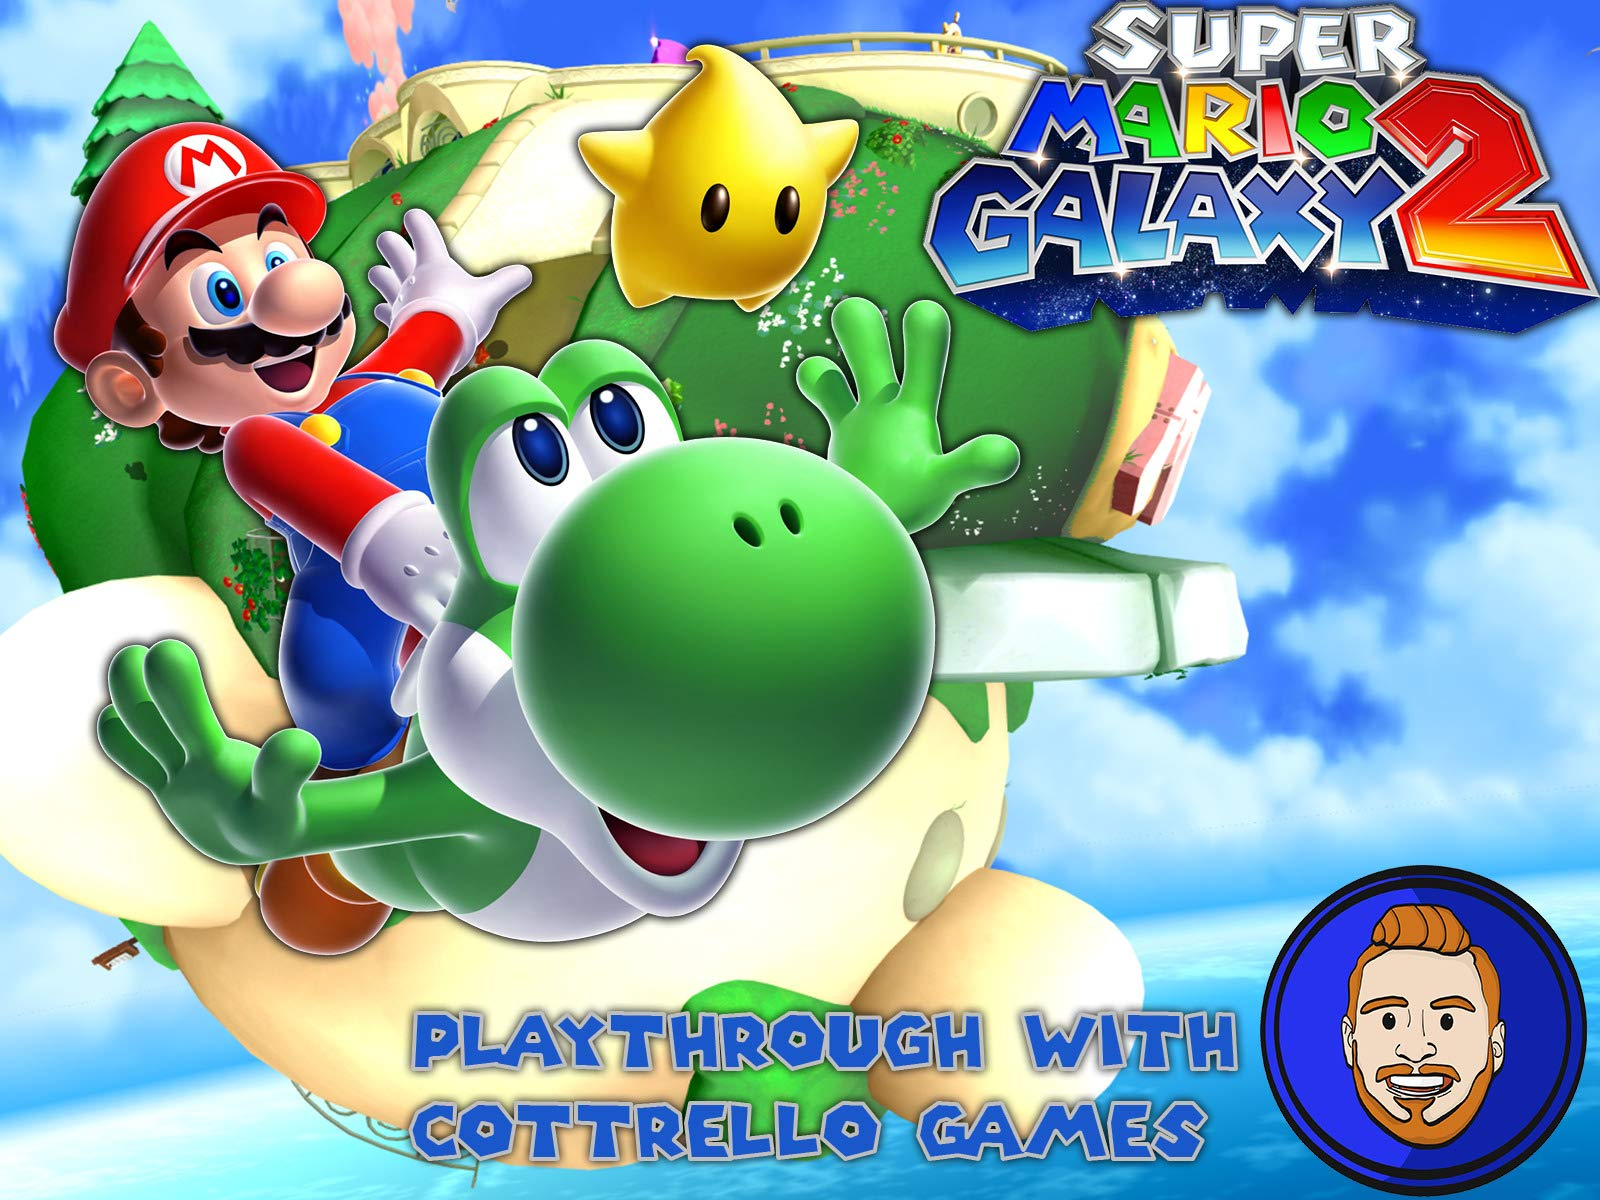 Super Mario Galaxy 2 Playthrough with Cottrello Games